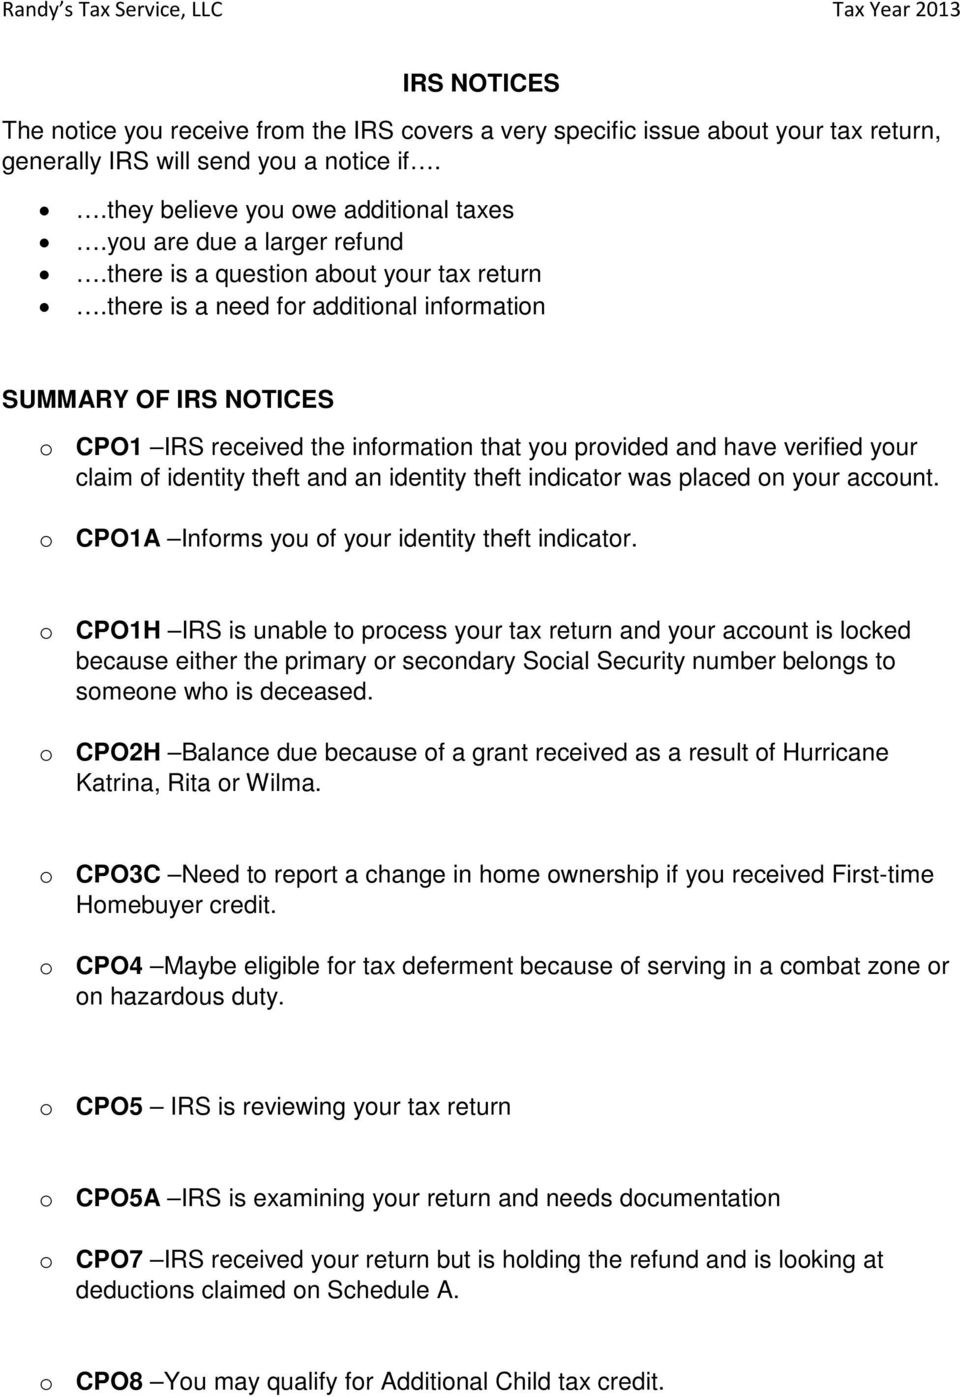 IRS NOTICES The notice you receive from the IRS covers a very ...